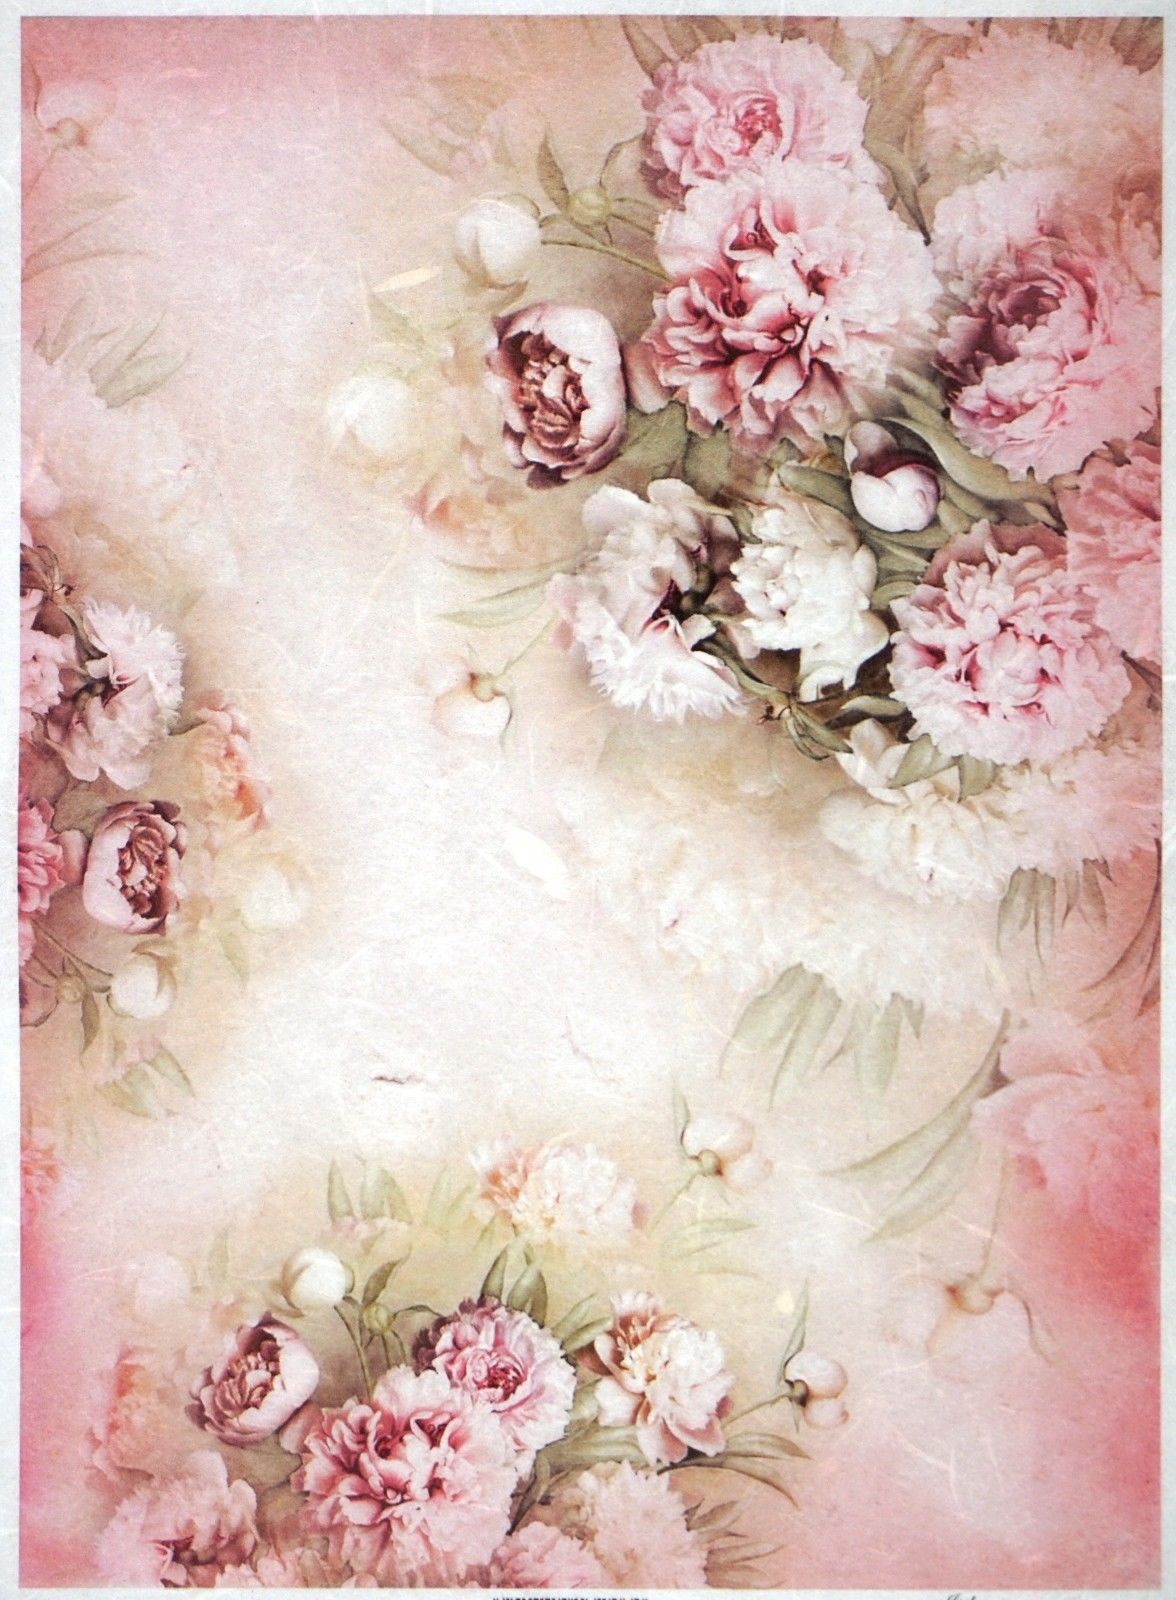 FLOWERS 5// CRAFT PAPER DECOUPAGE SHEETS RICE DECOUPAGE PAPER SCRAPBOOKING